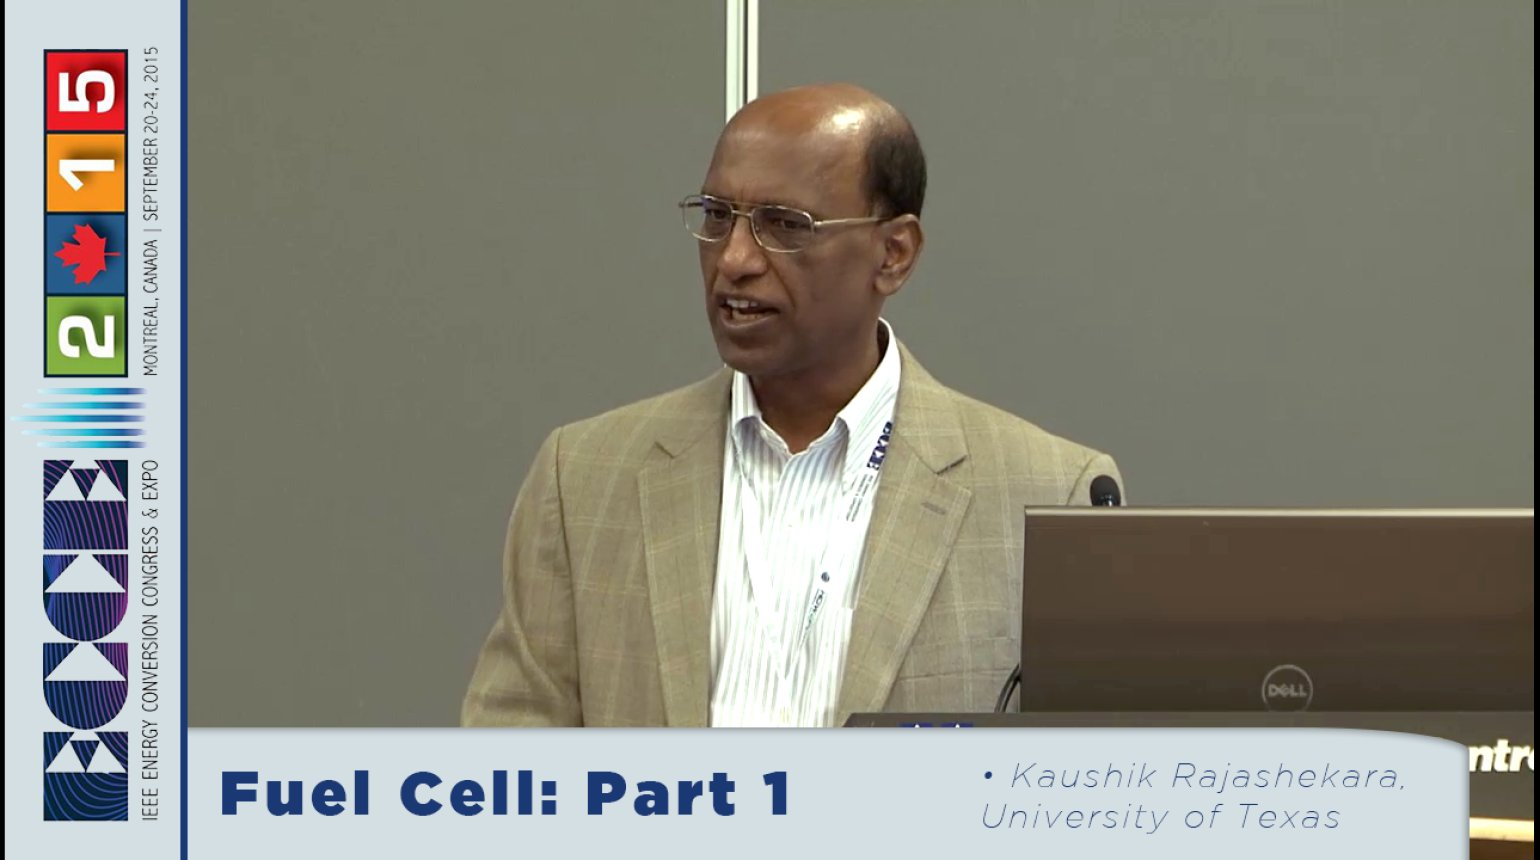 Fuel Cell Systems for Transportation and Stationary Power Generation: Tutorial with Kaushik Rajashekara